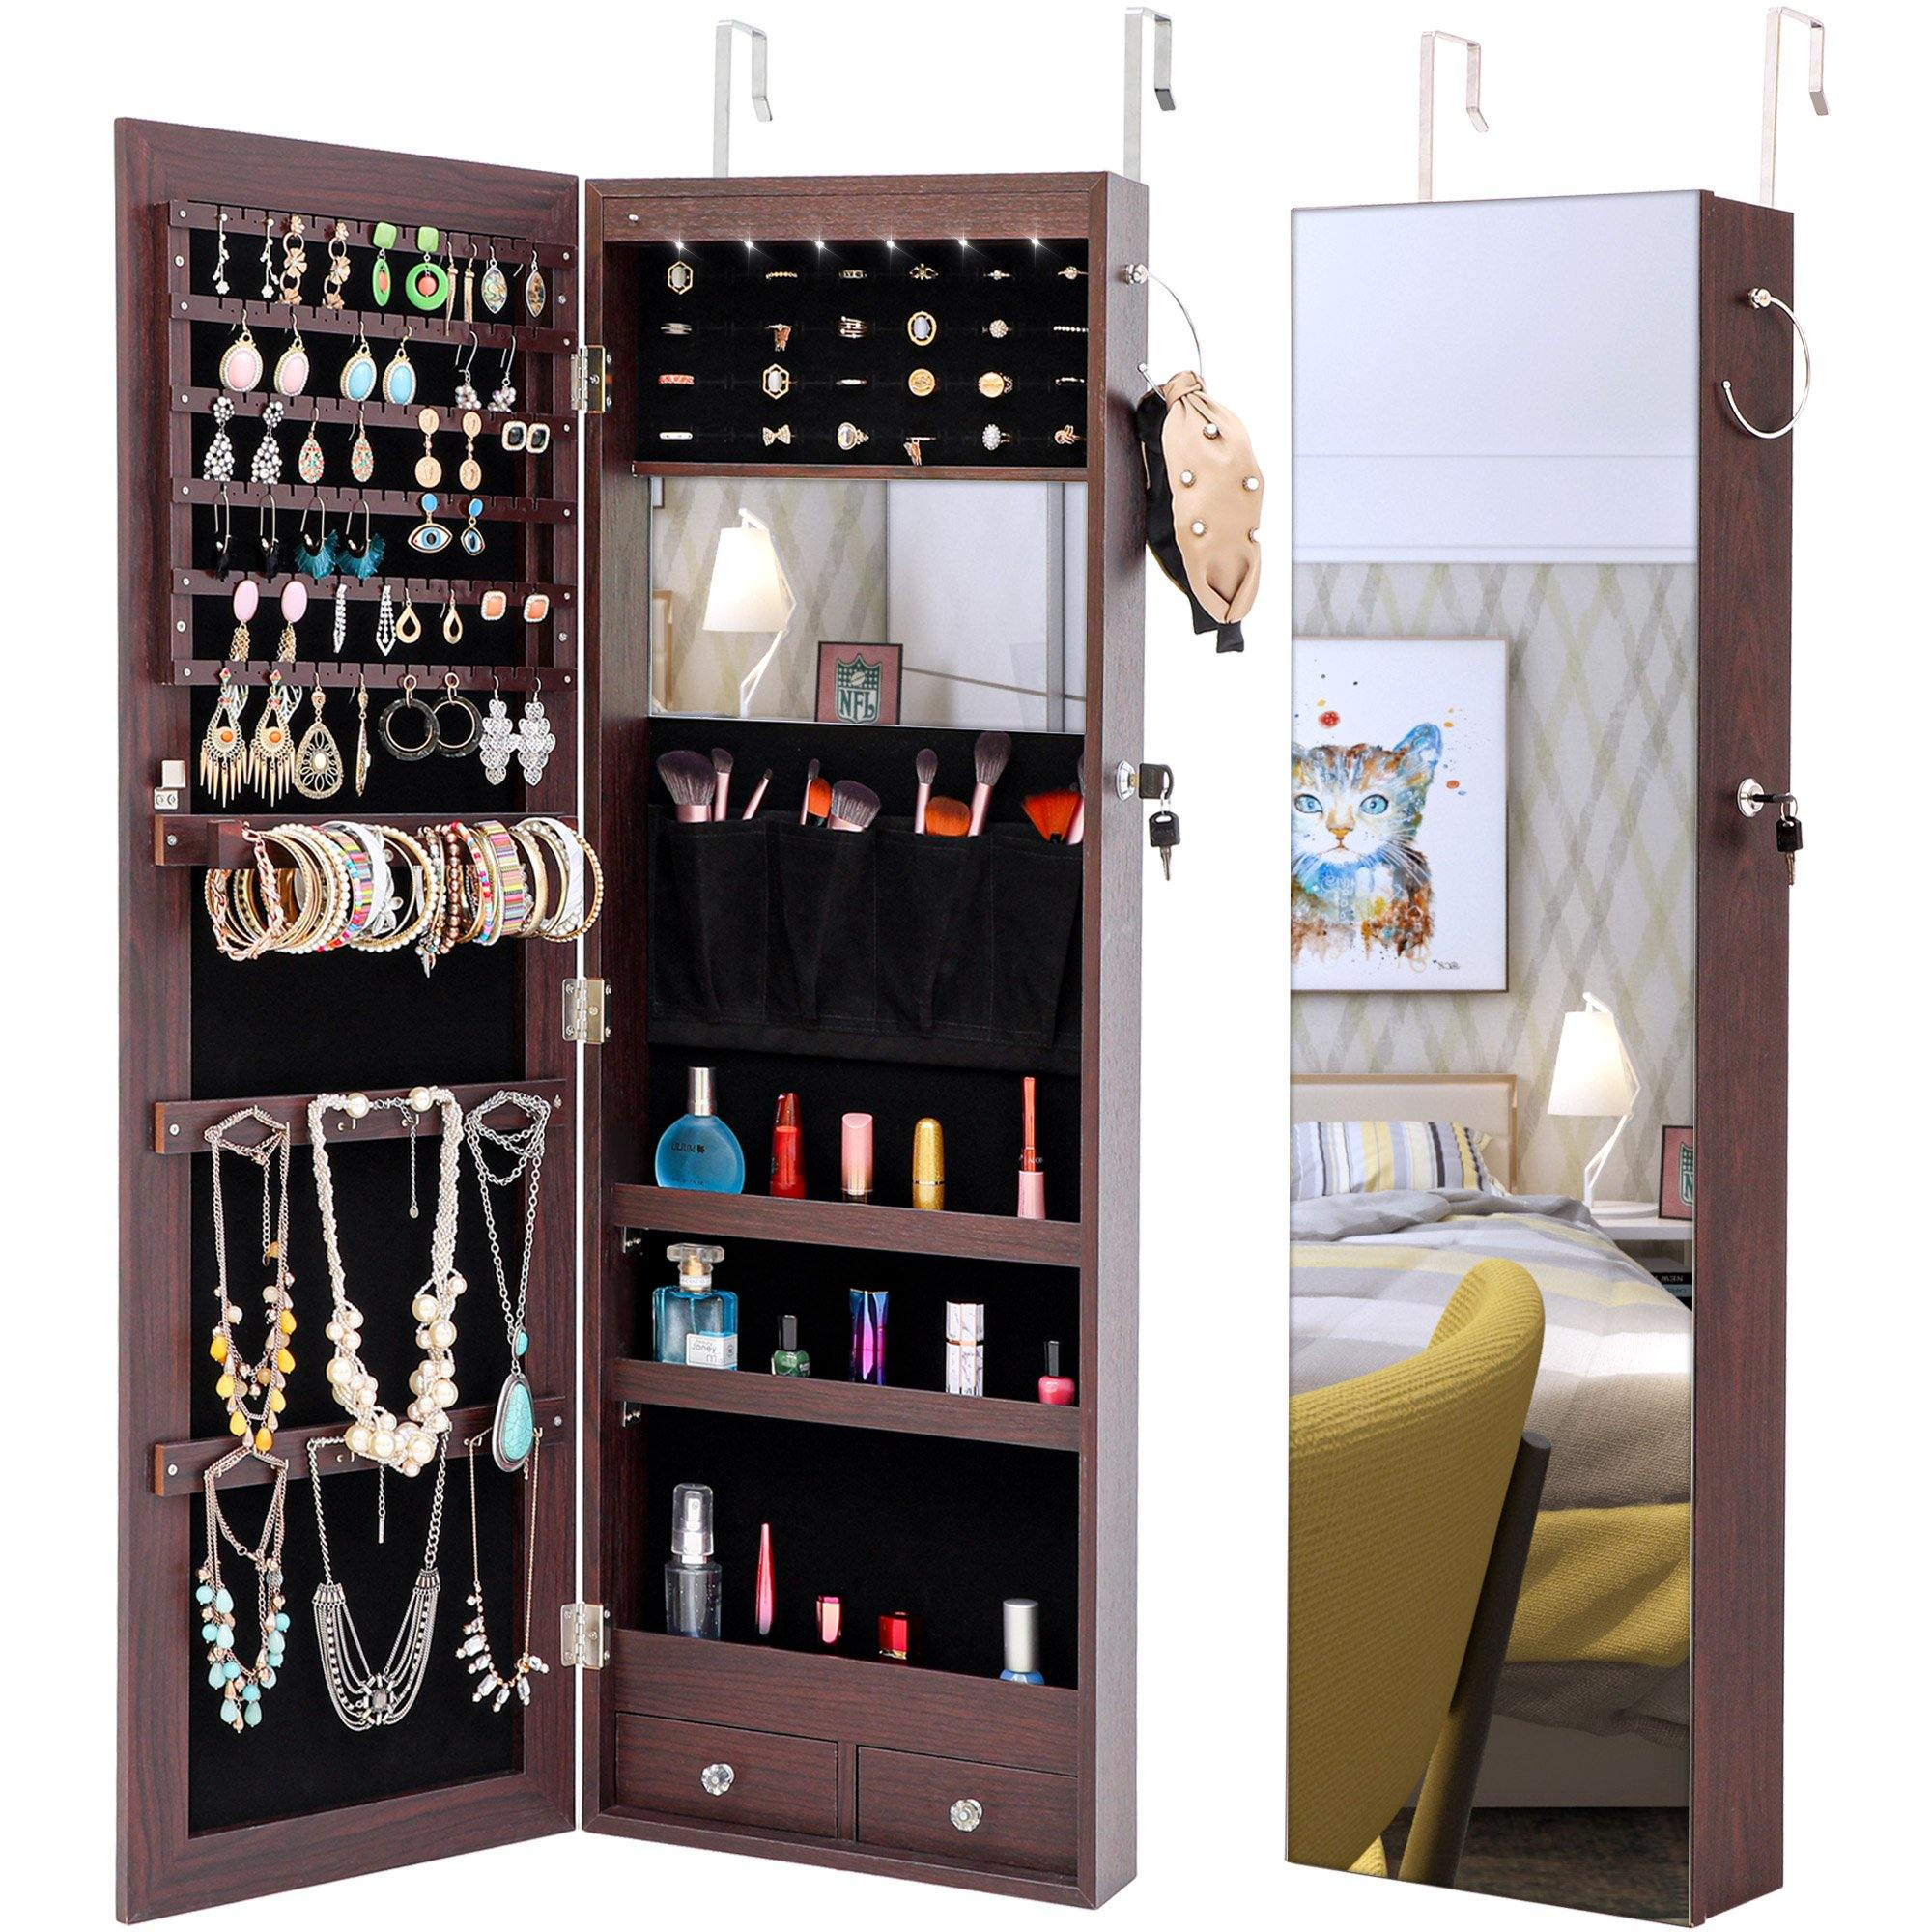 Milemont Jewelry Armoire with Mirror, Internal LED lights